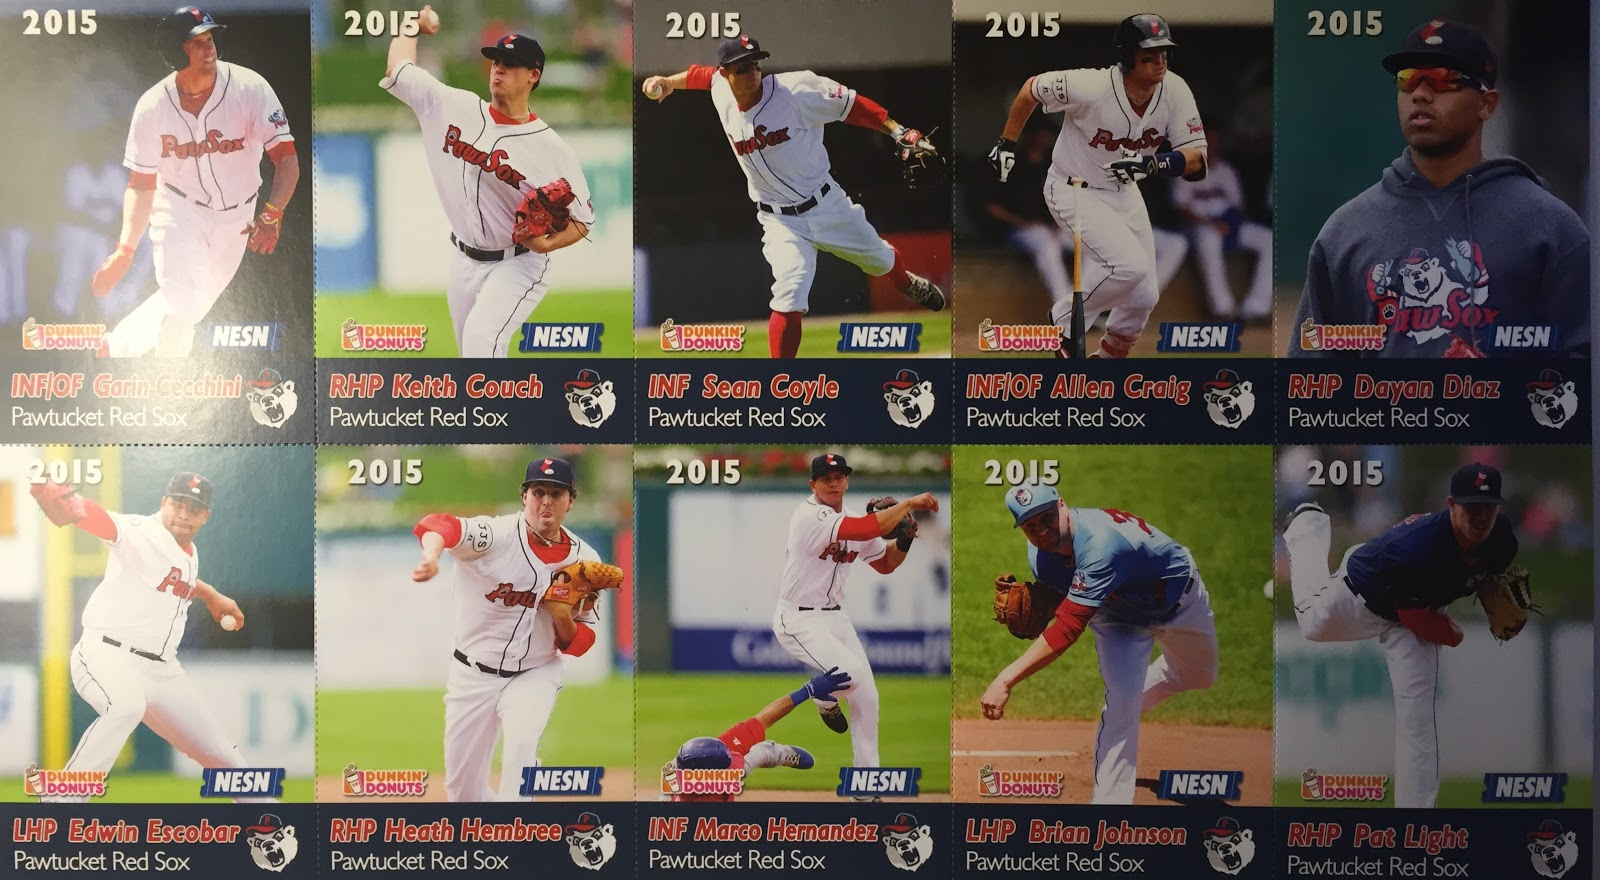 2015 pawtucket red sox promotional team card set | cards of future